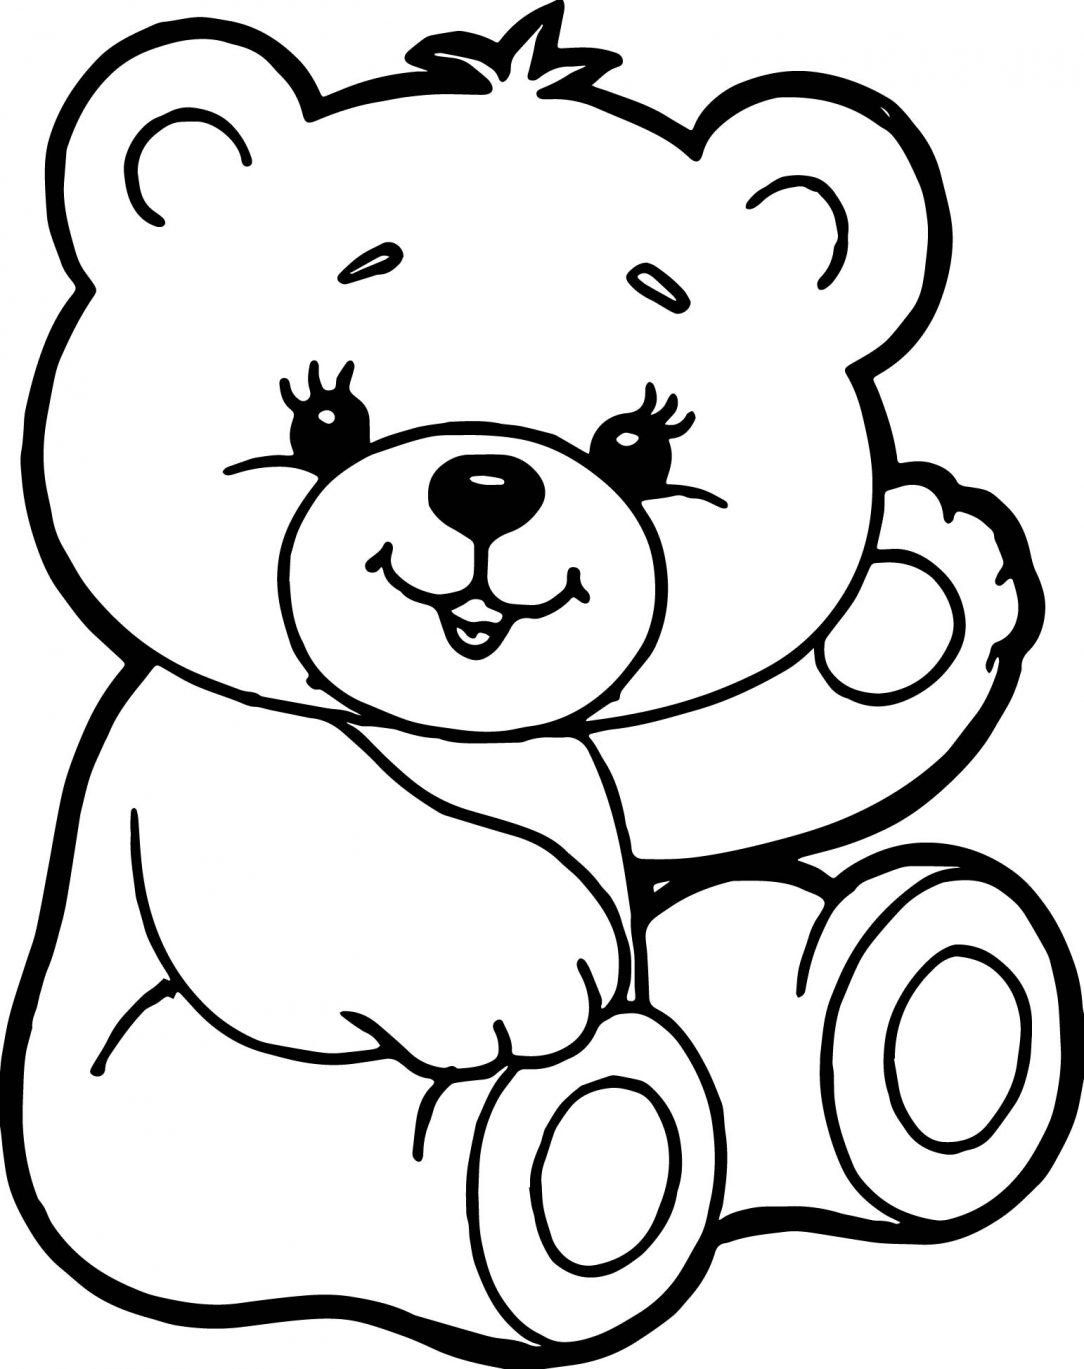 Teddy Bear Coloring Pages Best Of Color Sheet Cute Teddy Bear Brown Care Polar Free Gummy Teddy Bear Coloring Pages Bear Coloring Pages Cute Coloring Pages